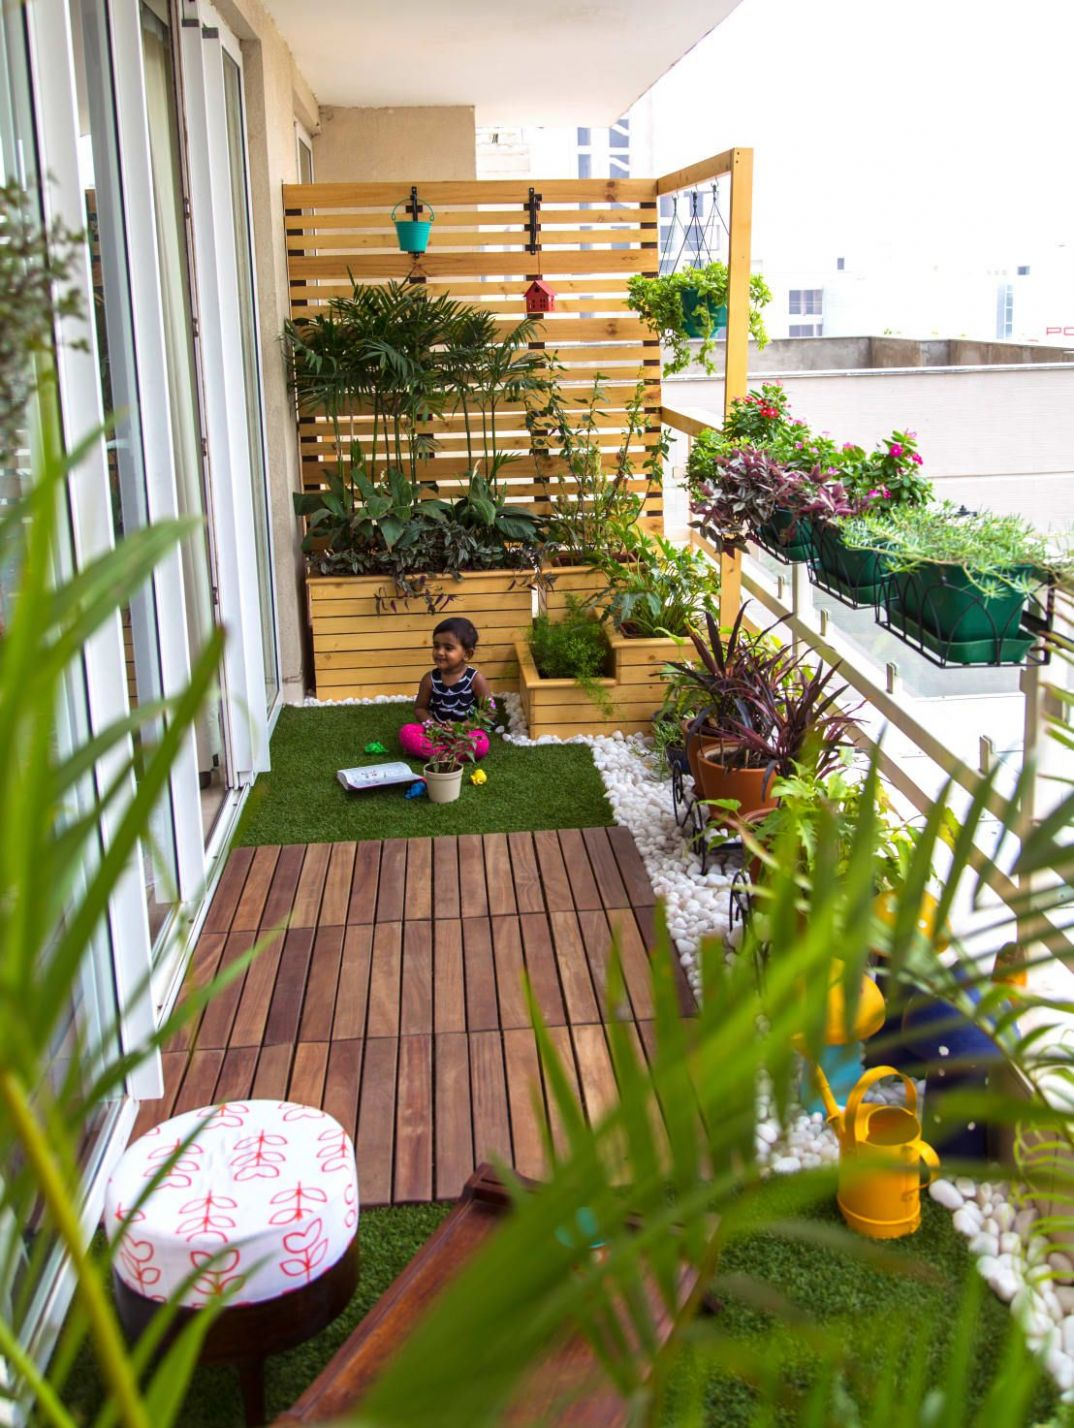 9 Smart Balcony Garden Ideas That are Awesome   Small balcony ..